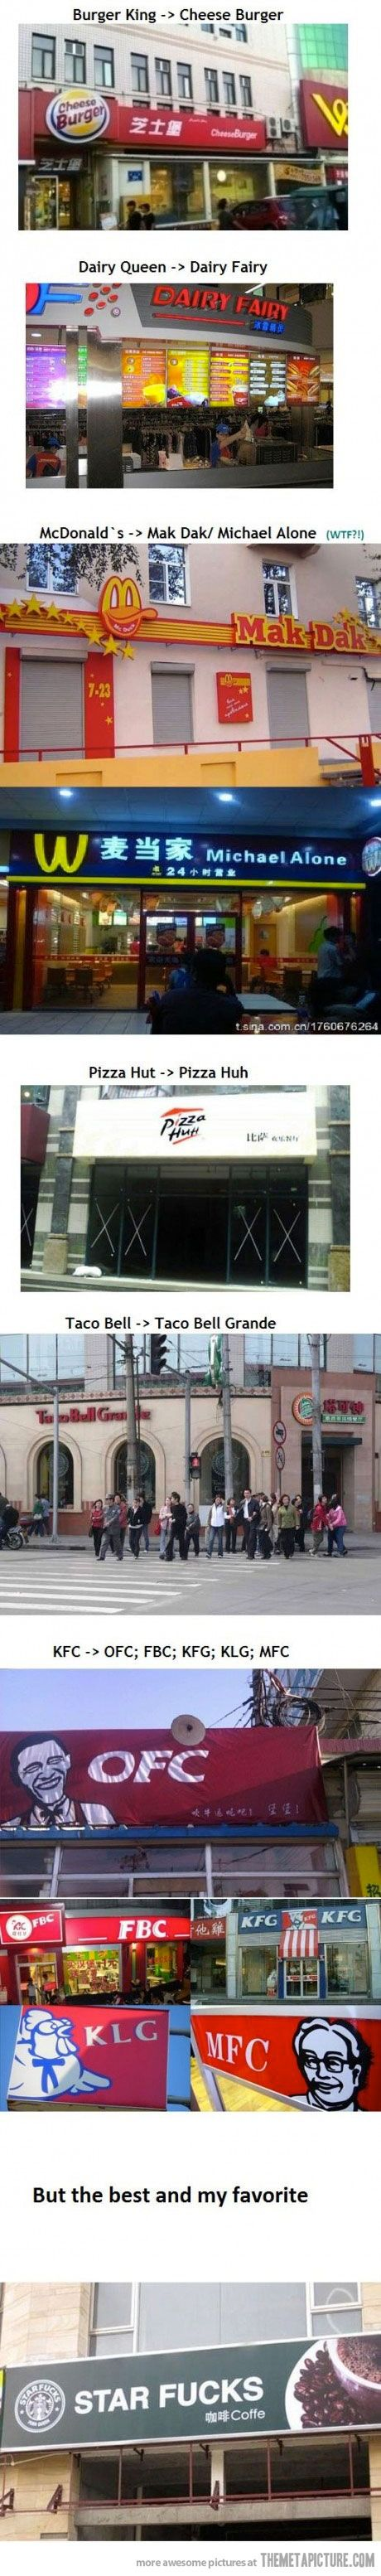 We should move to China, you an get a taco bell grande and get F'd at starbucks.